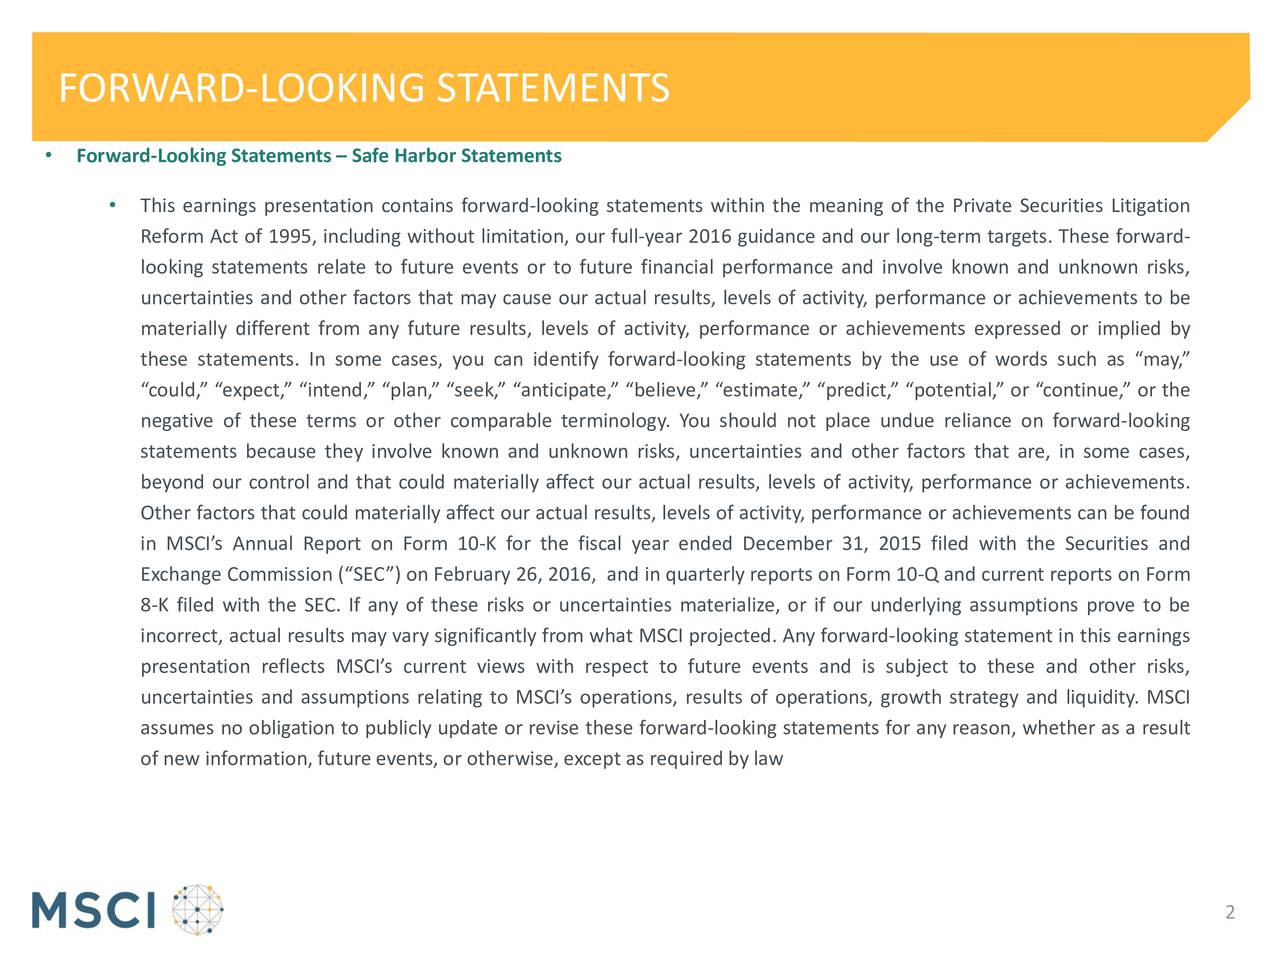 Forward-Looking Statements  Safe Harbor Statements This earnings presentation contains forward-looking statements within the meaning of the Private Securities Litigation Reform Act of 1995, including without limitation, our full-year 2016 guidance and our long-term targets. These forward- looking statements relate to future events or to future financial performance and involve known and unknown risks, uncertainties and other factors that may cause our actual results, levels of activity, performance or achievements to be materially different from any future results, levels of activity, performance or achievements expressed or implied by these statements. In some cases, you can identify forward-looking statements by the use of words such as may, could, expect, intend, plan, seek, anticipate, believe, estimate, predict, potential, or continue, or the negative of these terms or other comparable terminology. You should not place undue reliance on forward-looking statements because they involve known and unknown risks, uncertainties and other factors that are, in some cases, beyond our control and that could materially affect our actual results, levels of activity, performance or achievements. Other factors that could materially affect our actual results, levels of activity, performance or achievements can be found in MSCIs Annual Report on Form 10-K for the fiscal year ended December 31, 2015 filed with the Securities and Exchange Commission (SEC) on February 26, 2016, and in quarterly reports on Form 10-Q and current reports on Form 8-K filed with the SEC. If any of these risks or uncertainties materialize, or if our underlying assumptions prove to be incorrect, actual results may vary significantly from what MSCI projected. Any forward-looking statement in this earnings presentation reflects MSCIs current views with respect to future events and is subject to these and other risks, uncertainties and assumptions relating to MSCIs operations, results of operations, growth